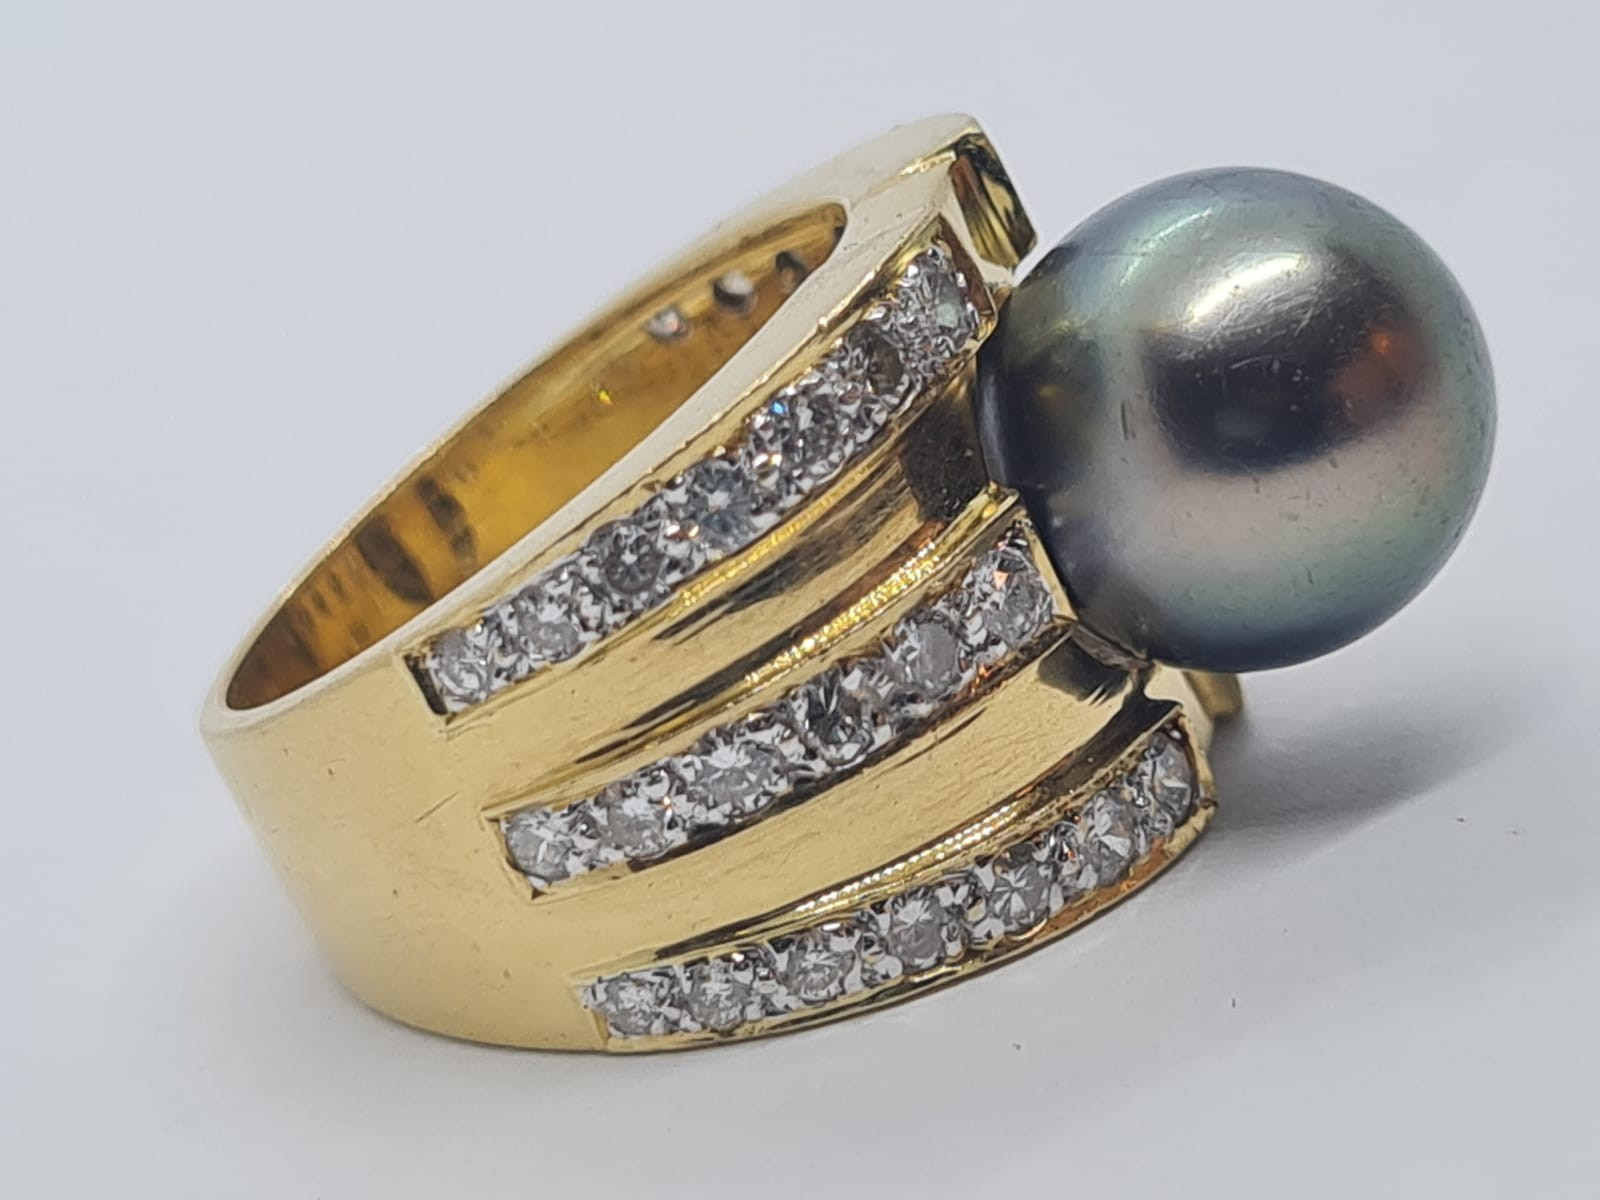 18k yellow gold with Tahitian pearl centre and decorated with 1.50ct diamonds approx, weight 12.8g - Image 5 of 9